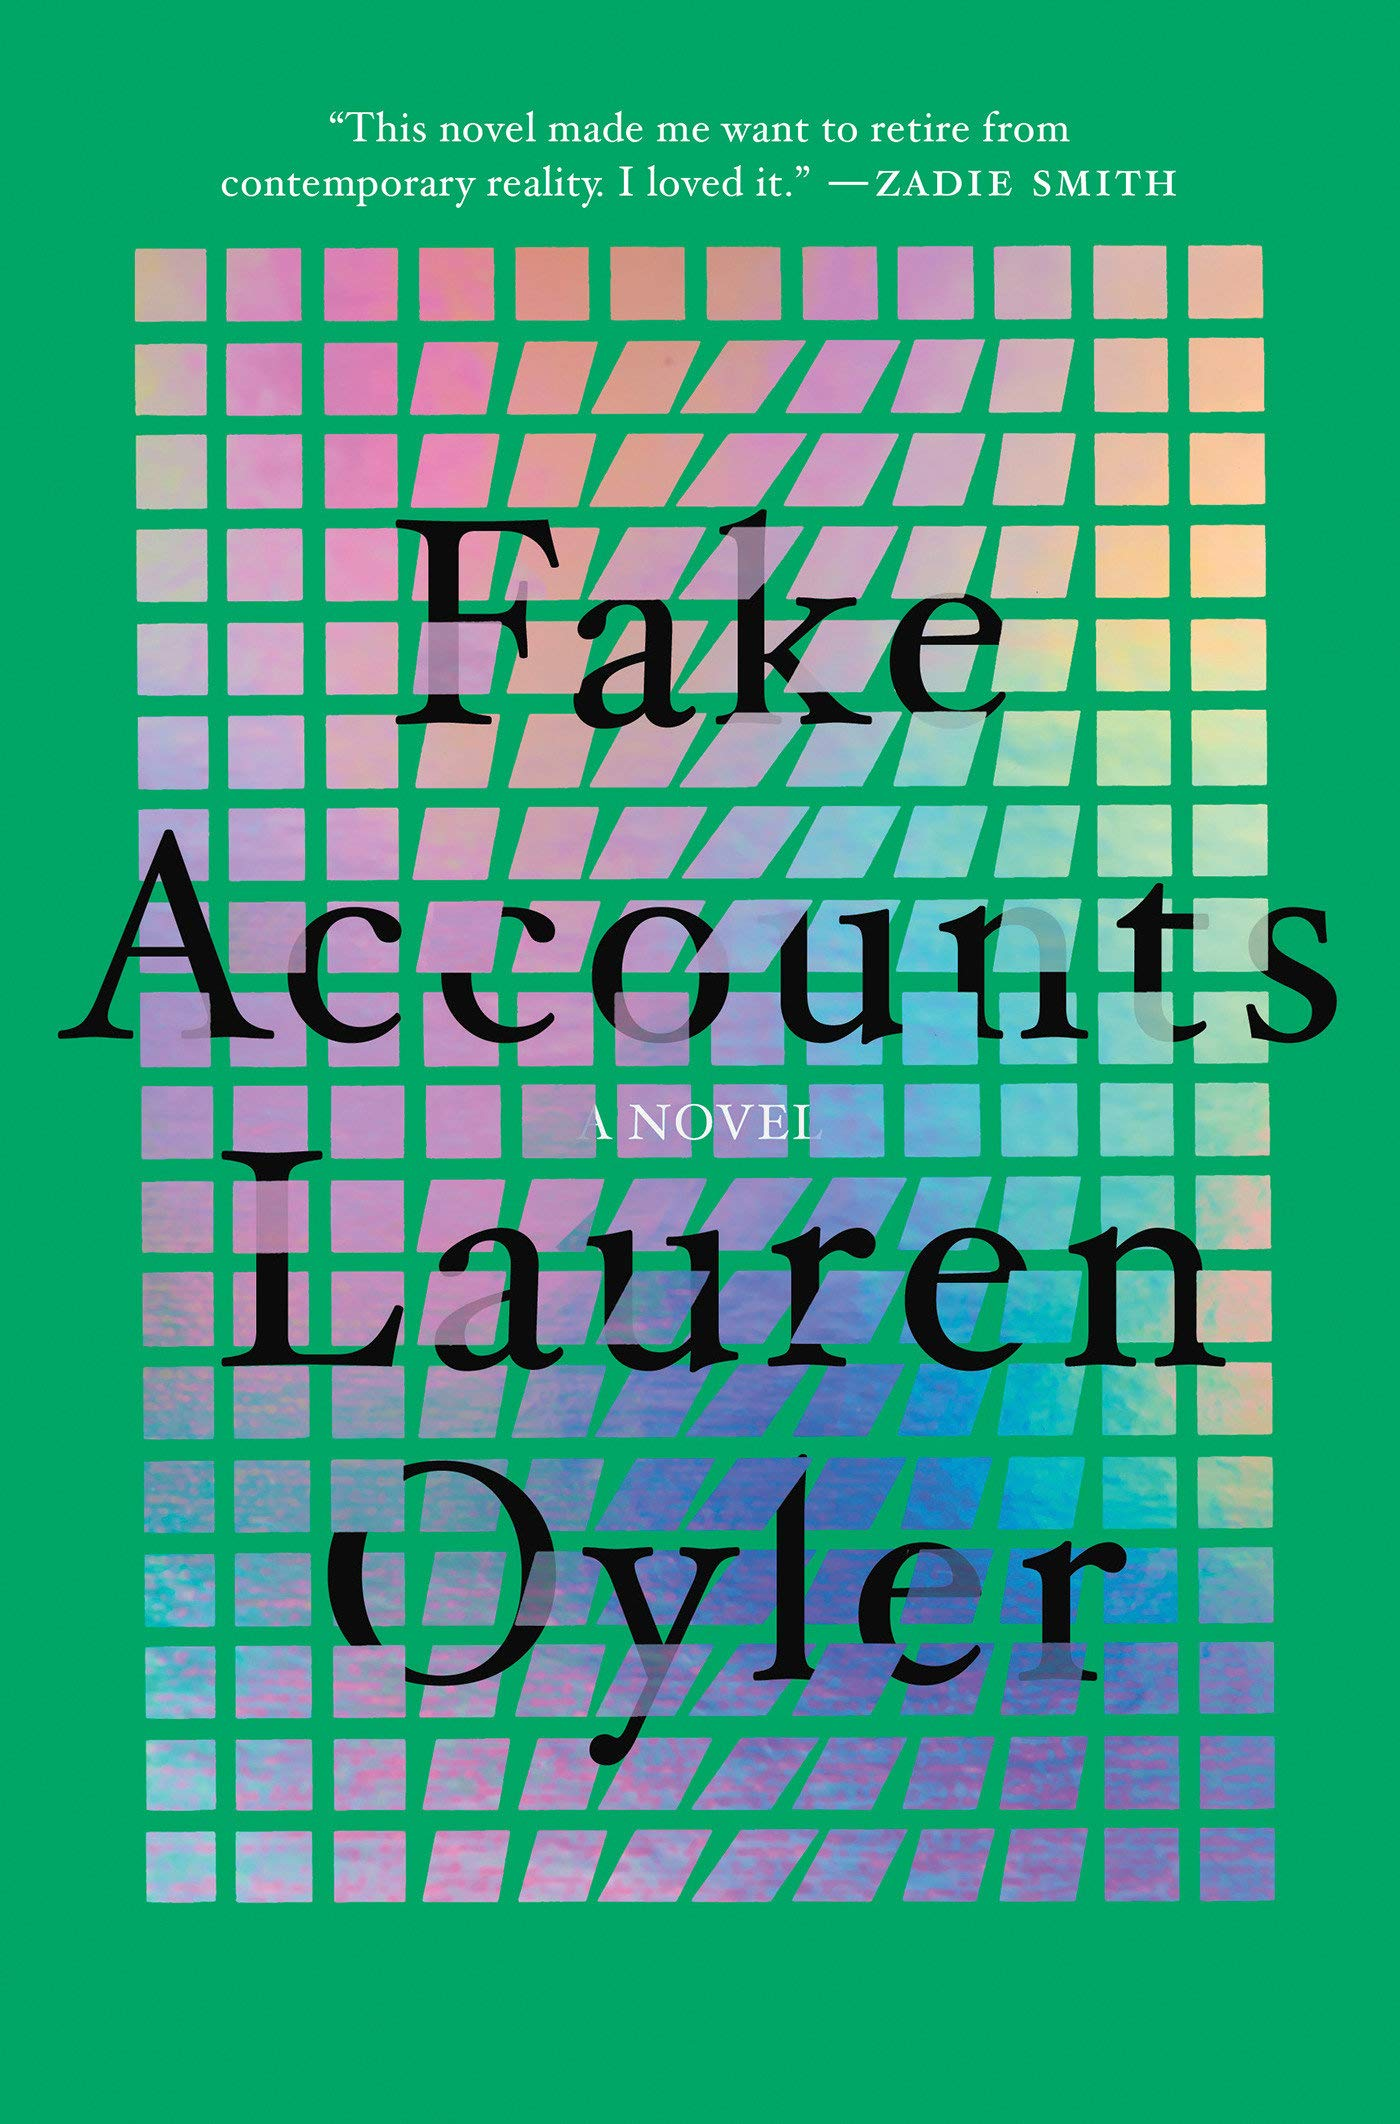 Fake Accounts: Oyler, Lauren: 9781948226929: Amazon.com: Books